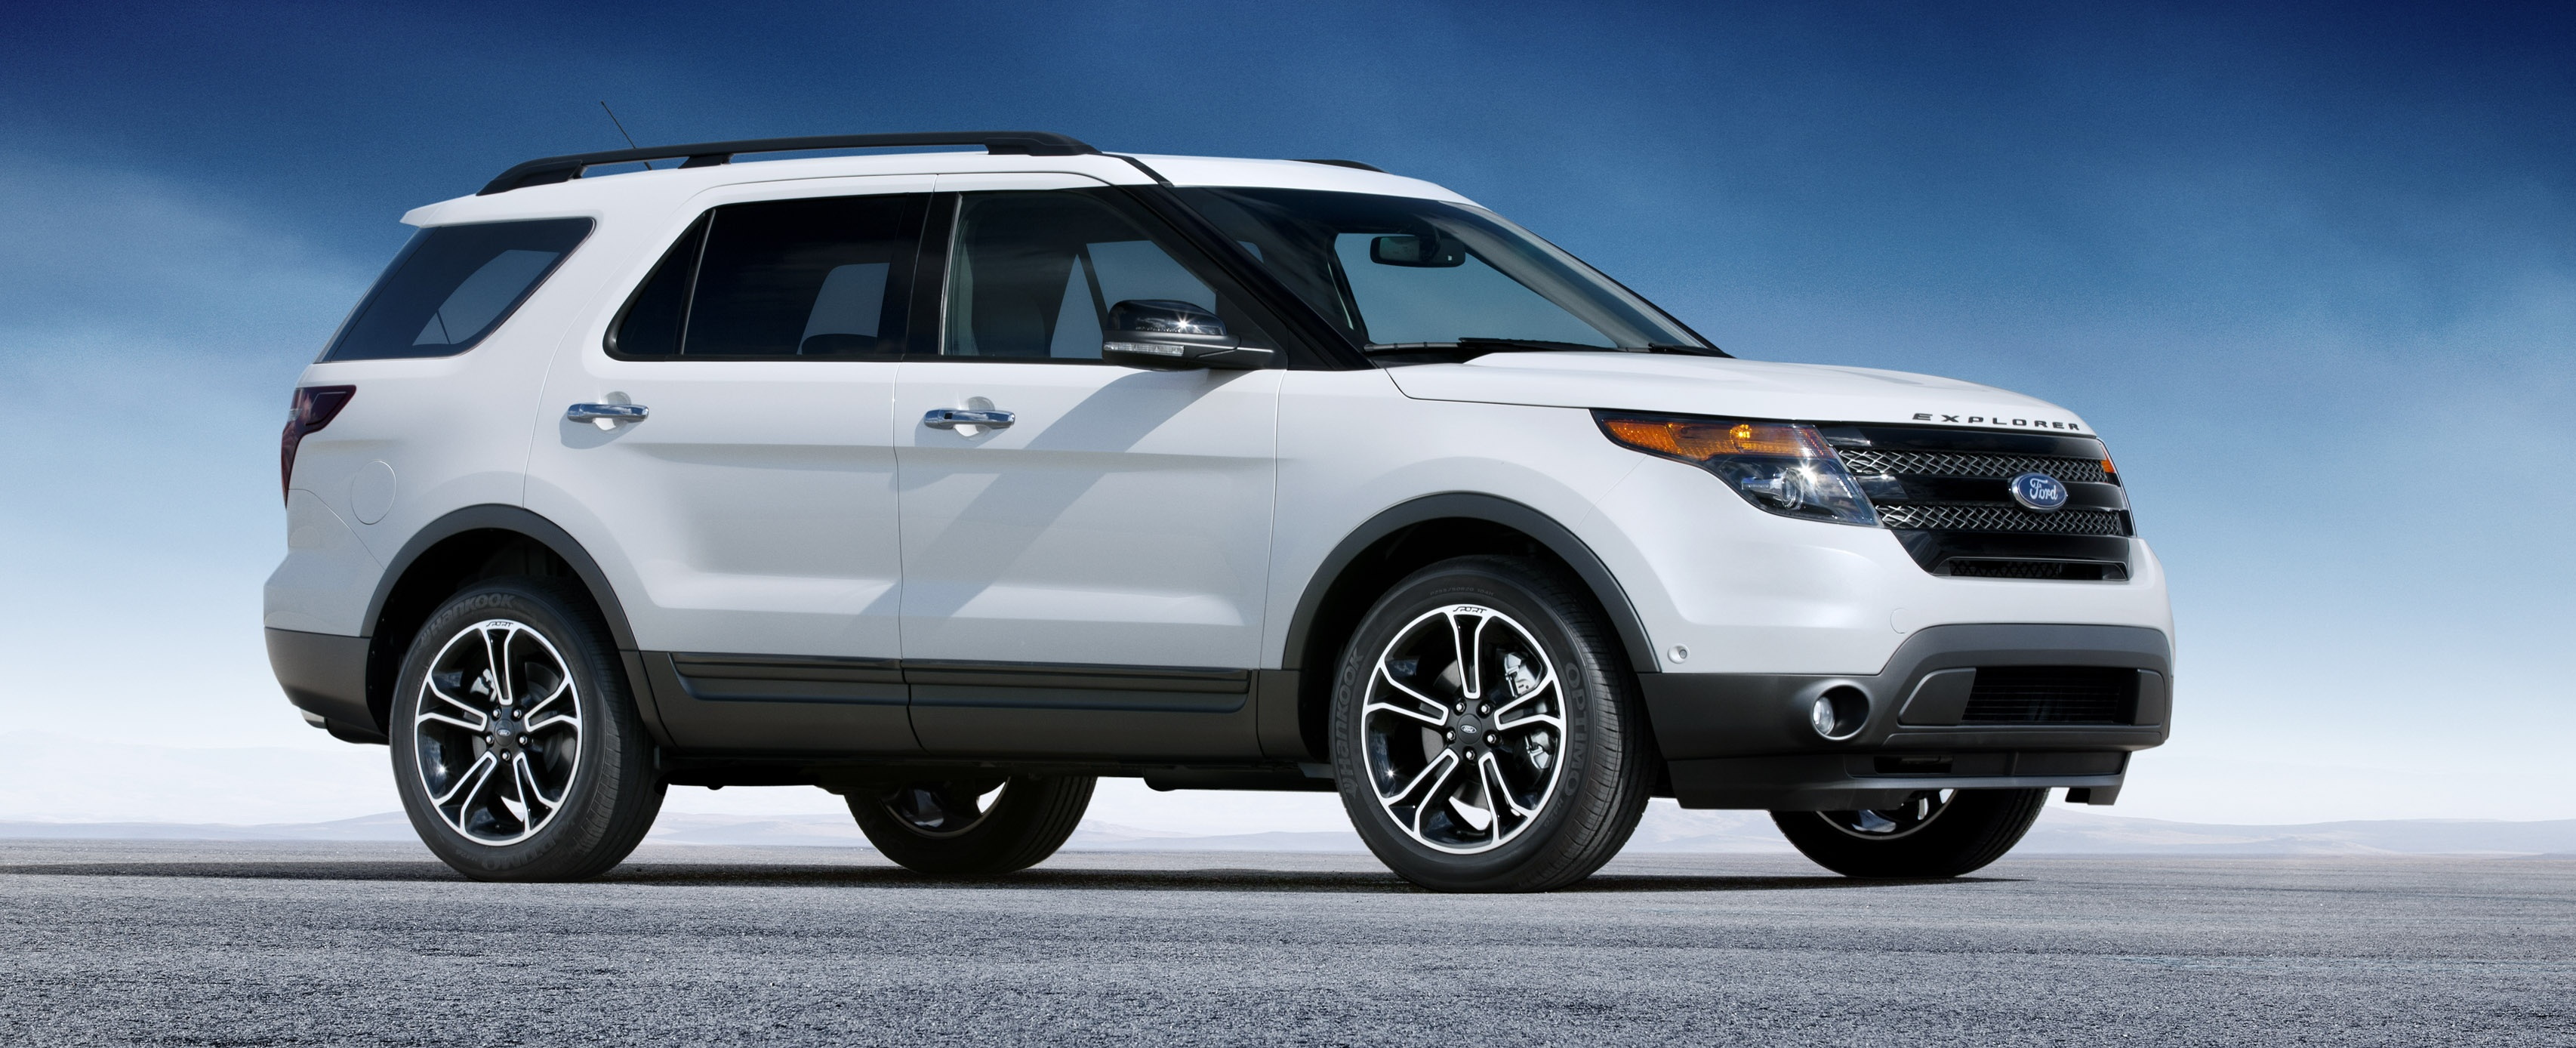 Ford territory 2013 photo - 2